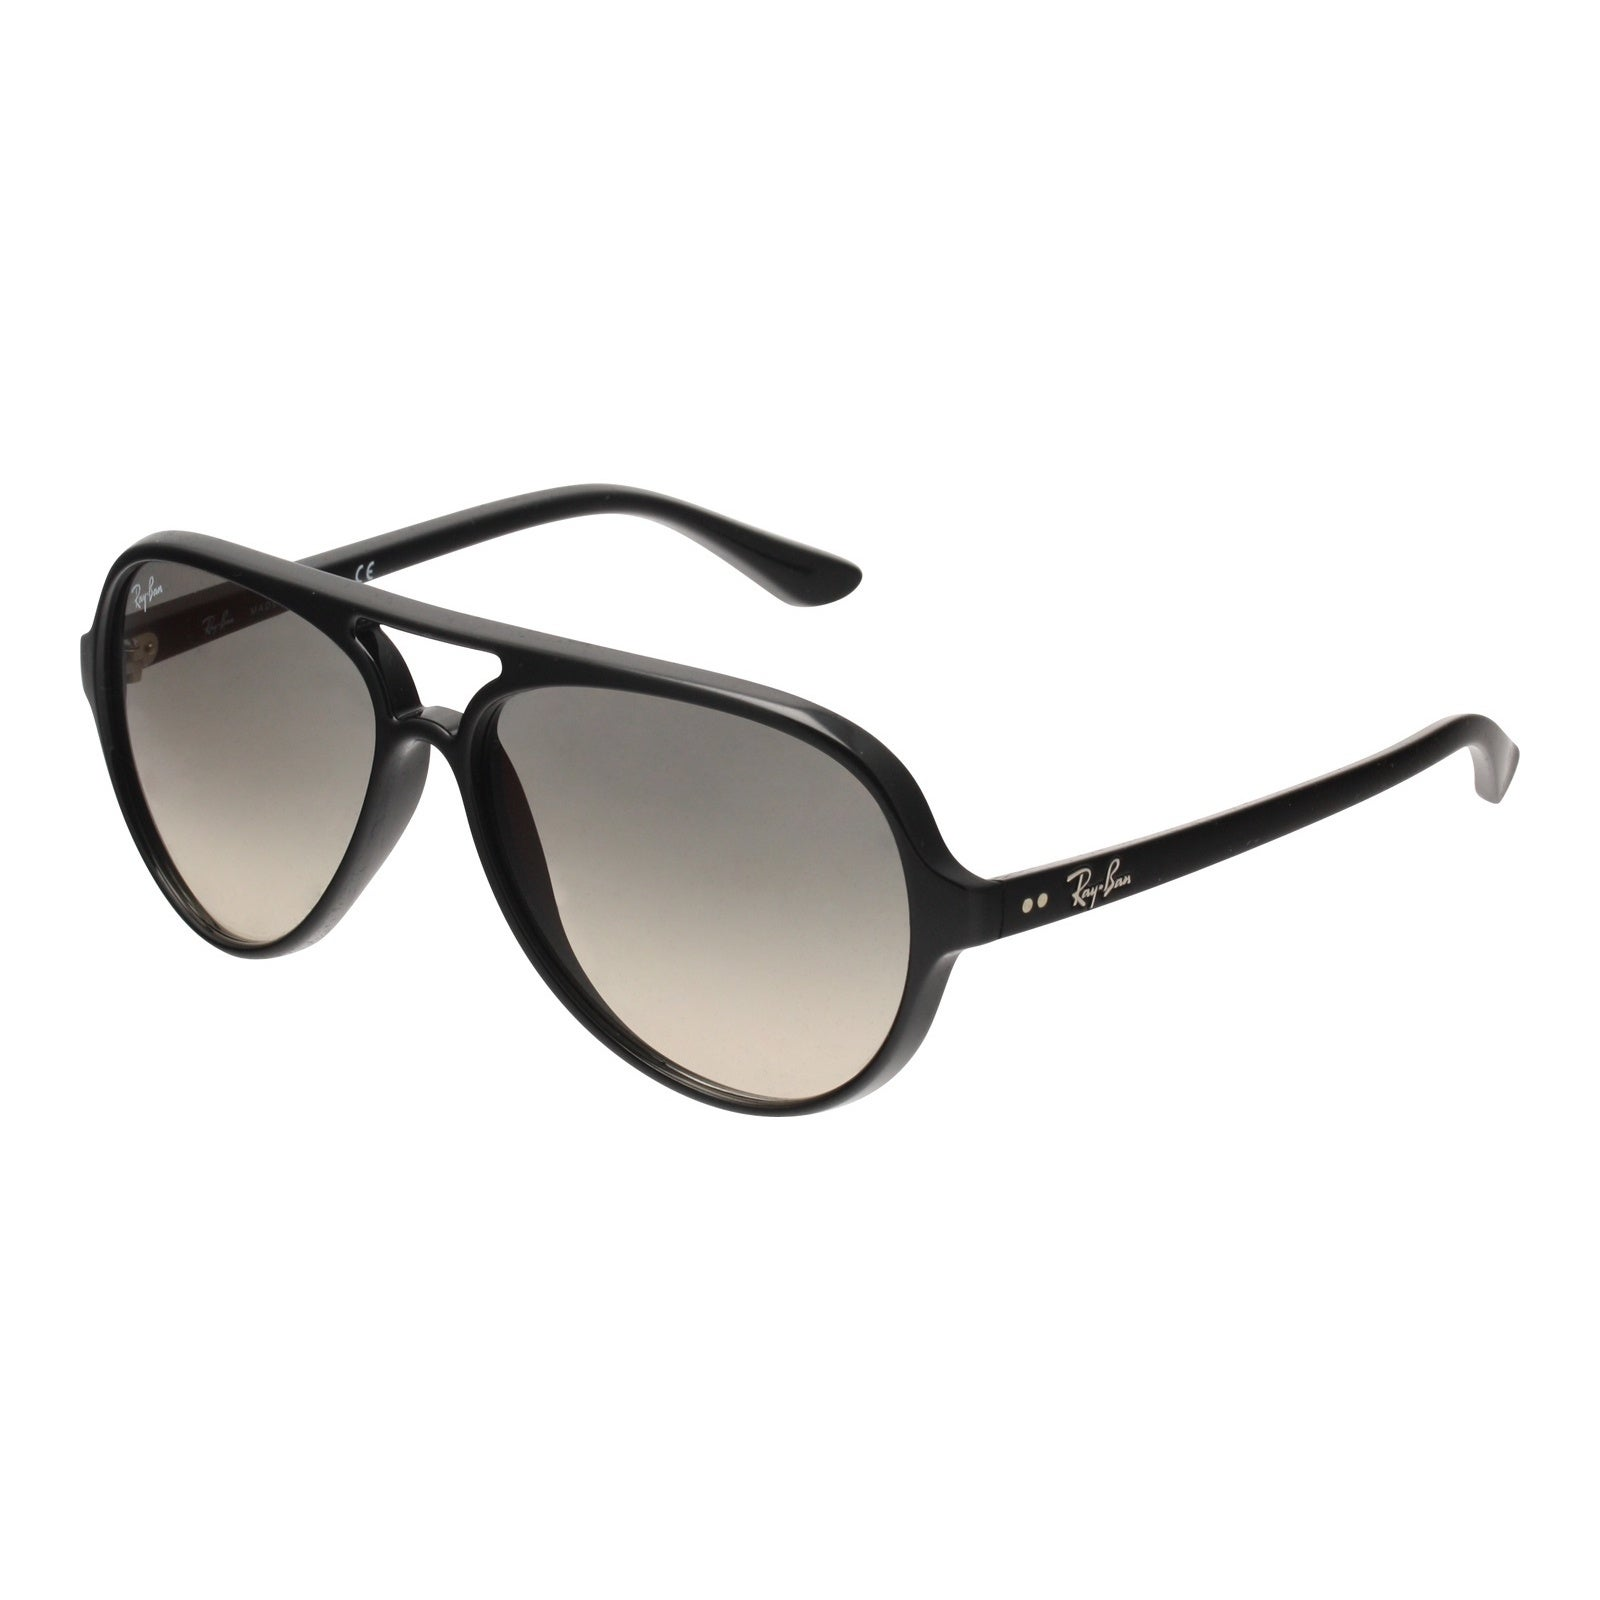 ee4adb60413 Ray-Ban RB4125 601 32 Cats 5000 Black Frame Light Grey Gradient 59mm Lens  Sunglasses